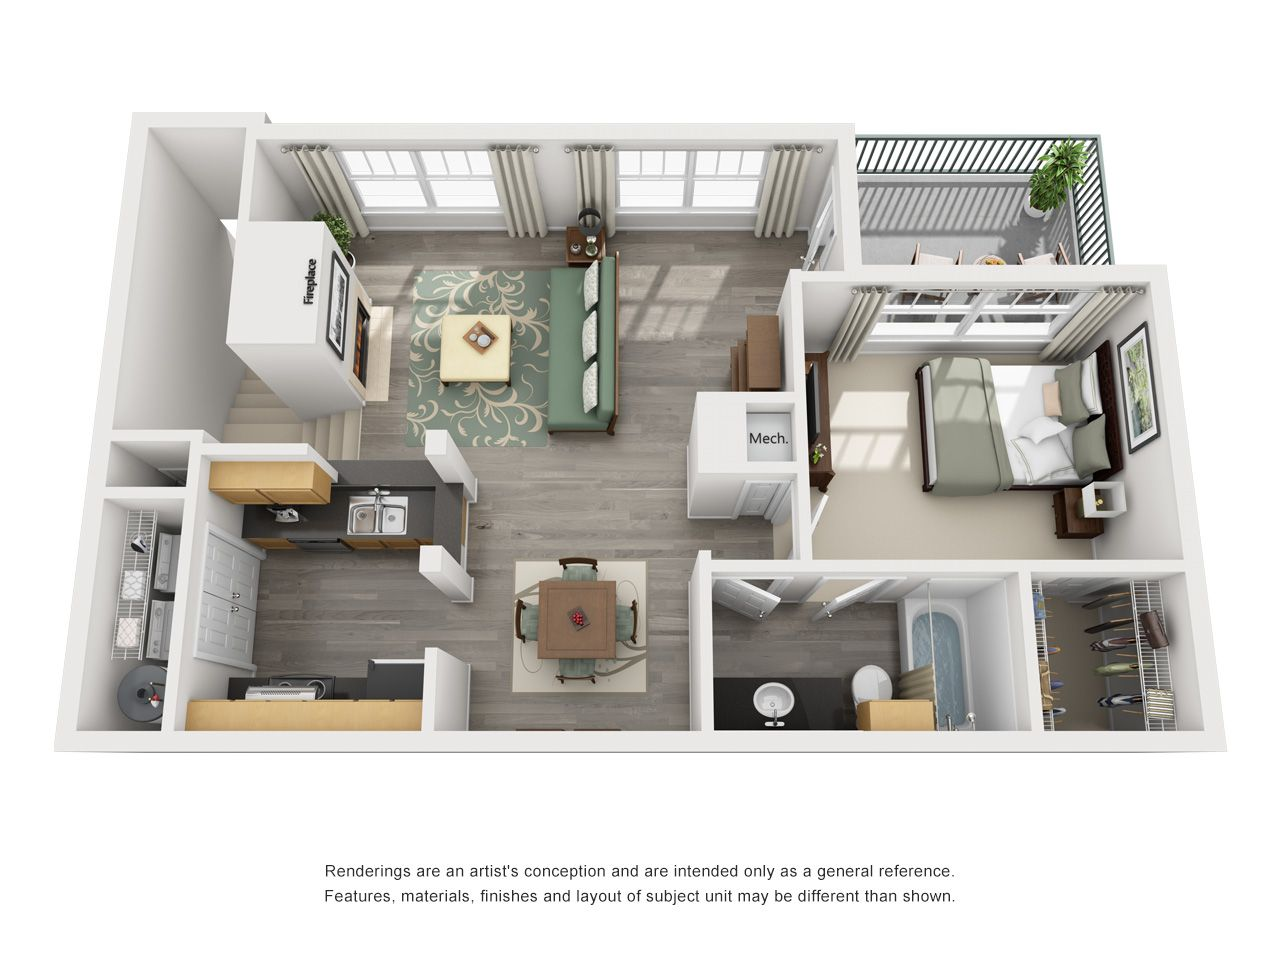 Luxury 1 2 And 3 Bedroom Apartments In Bolingbrook Il Bolingbrook Illinois Apartment Steadfast Apartment Layout Apartment Floor Plans Apartment